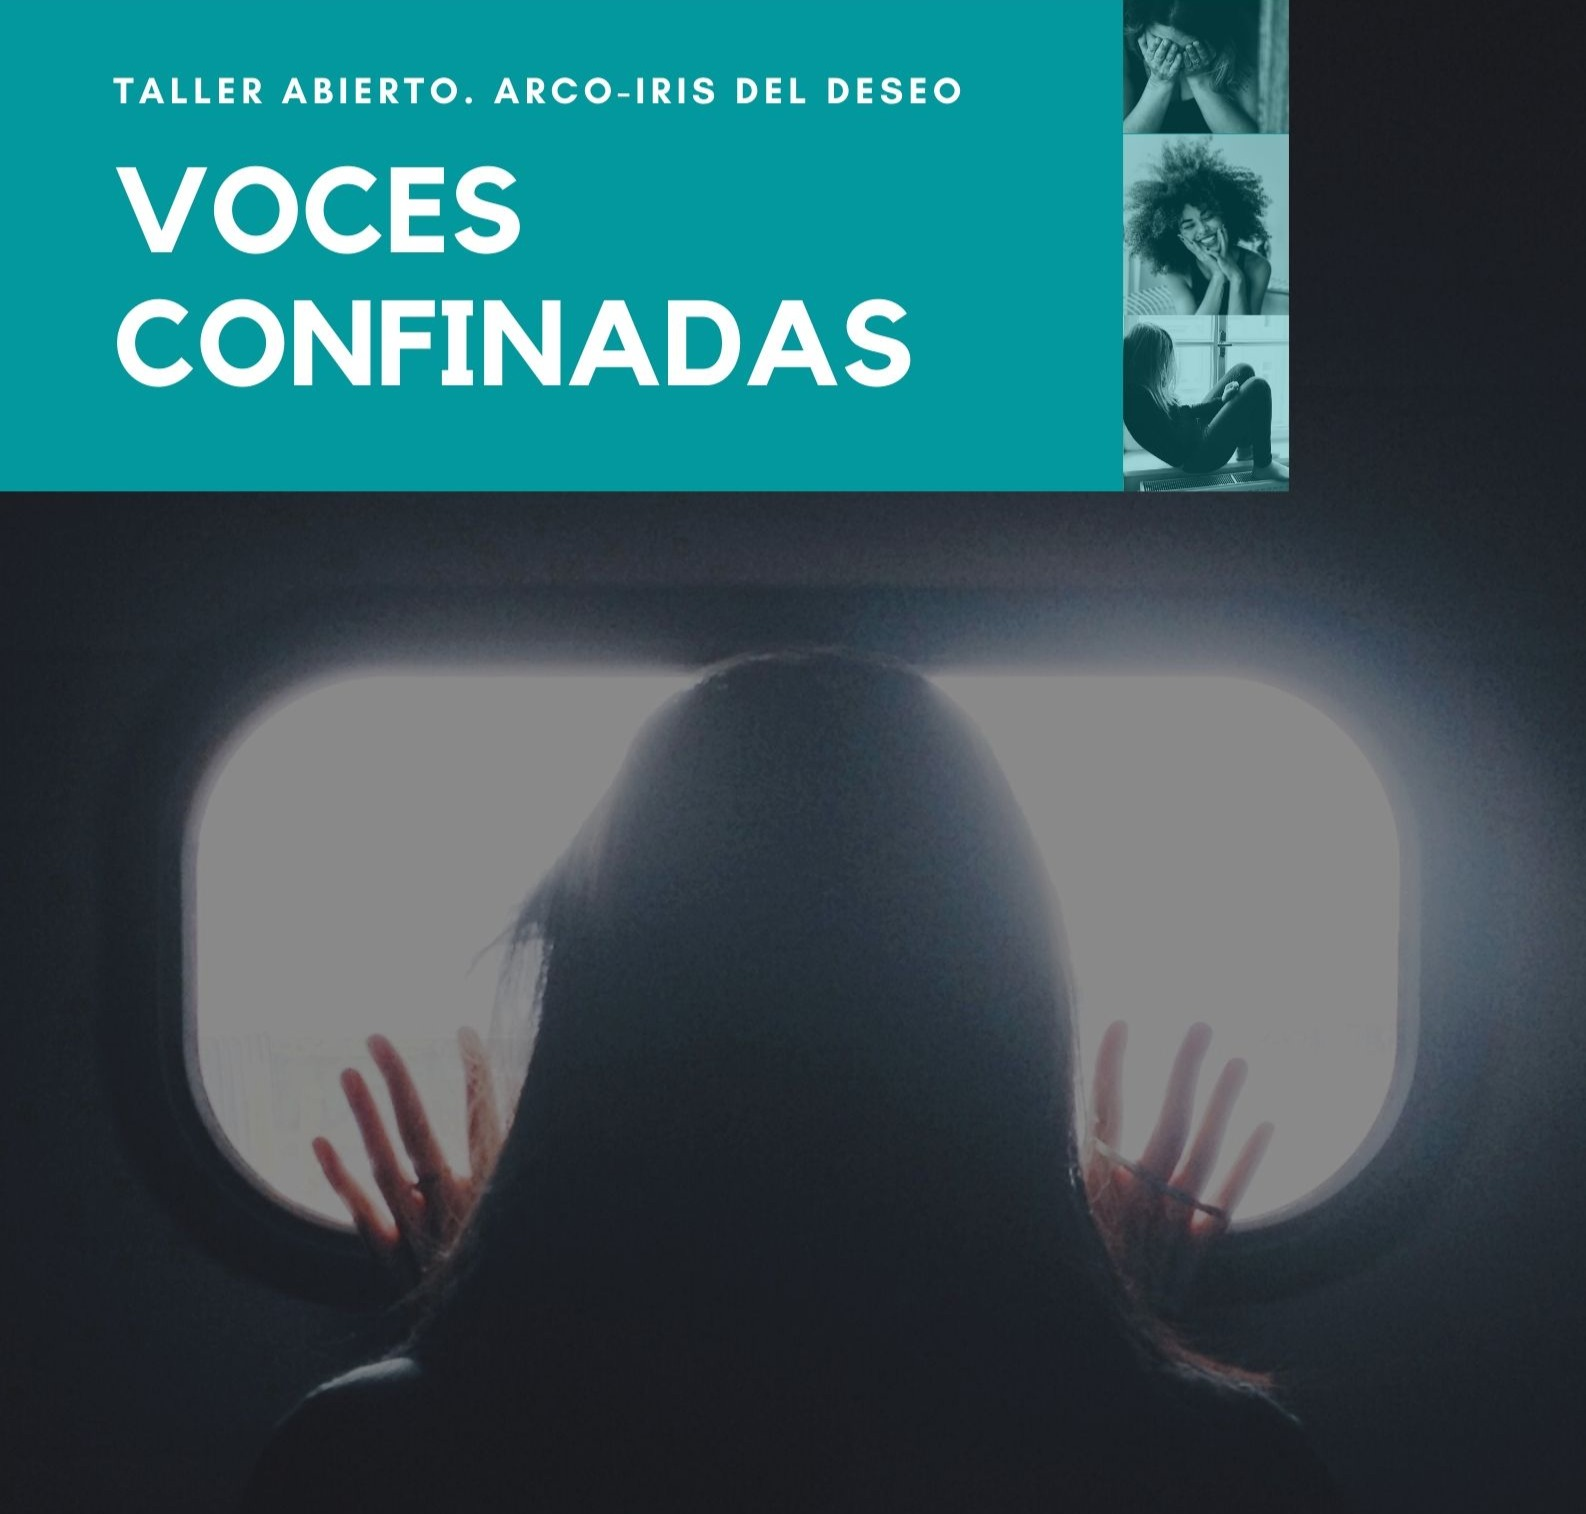 Voces confinadas